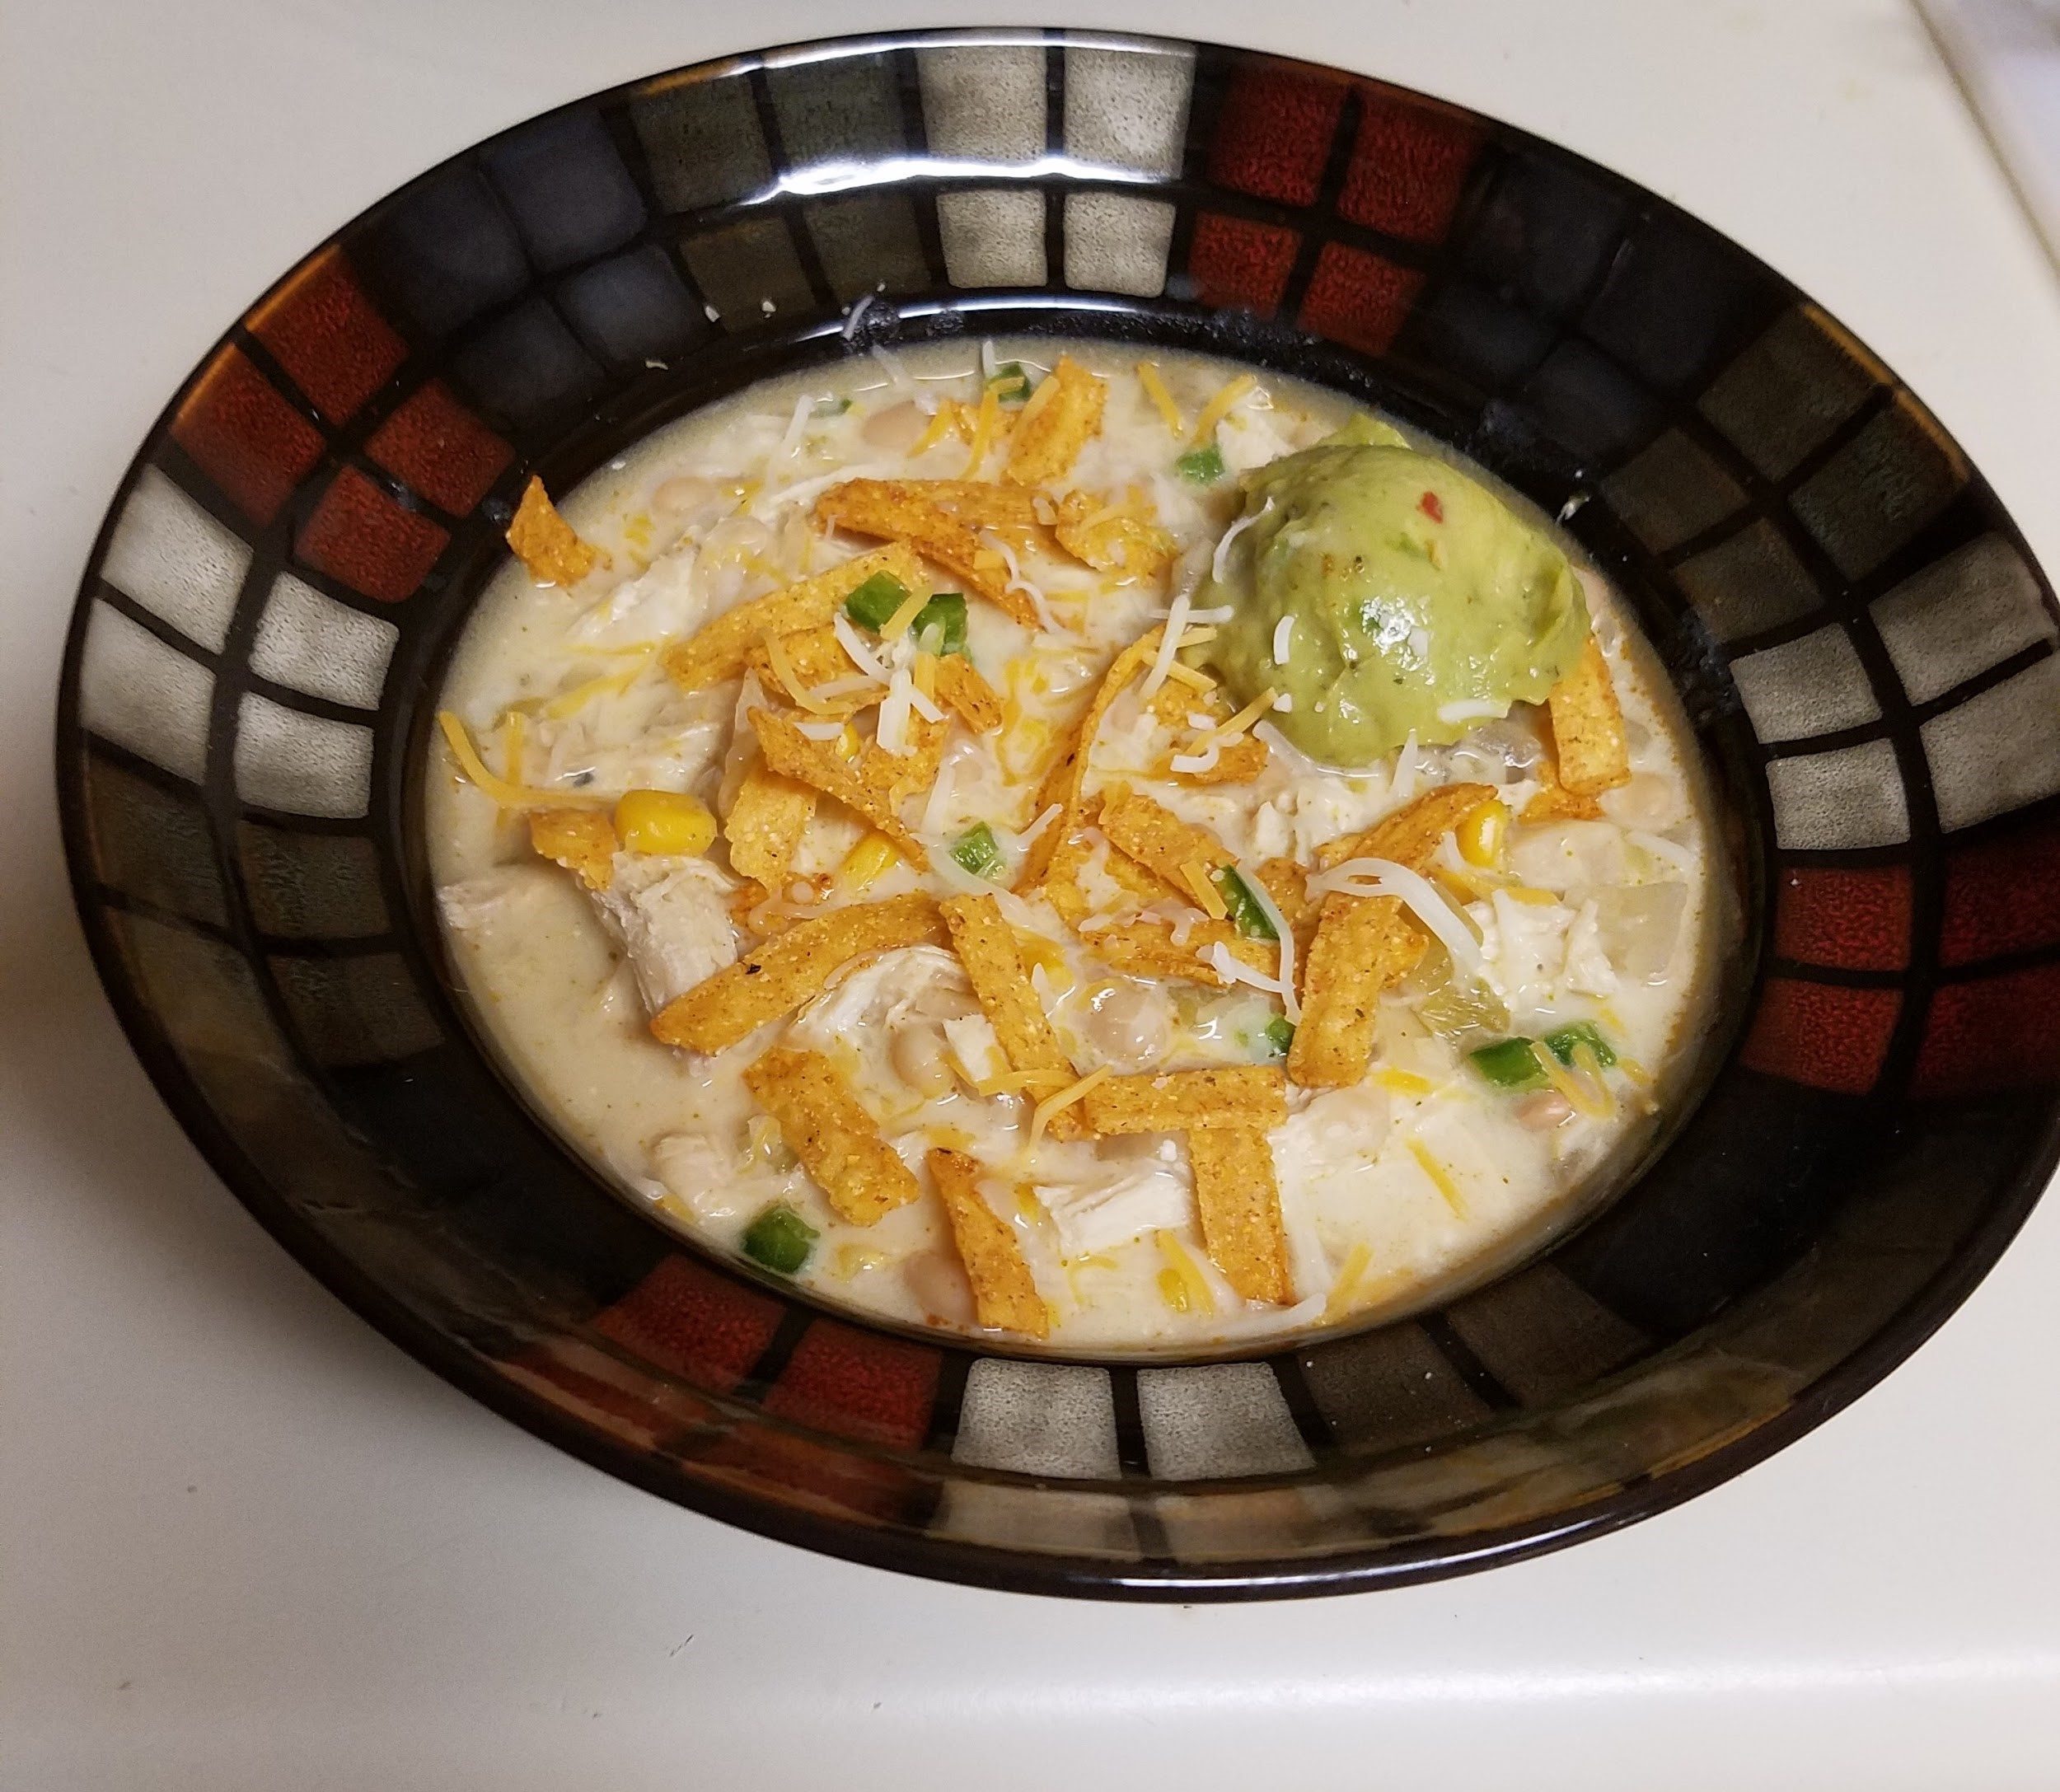 Incredible White Chicken Chili masterpiece served